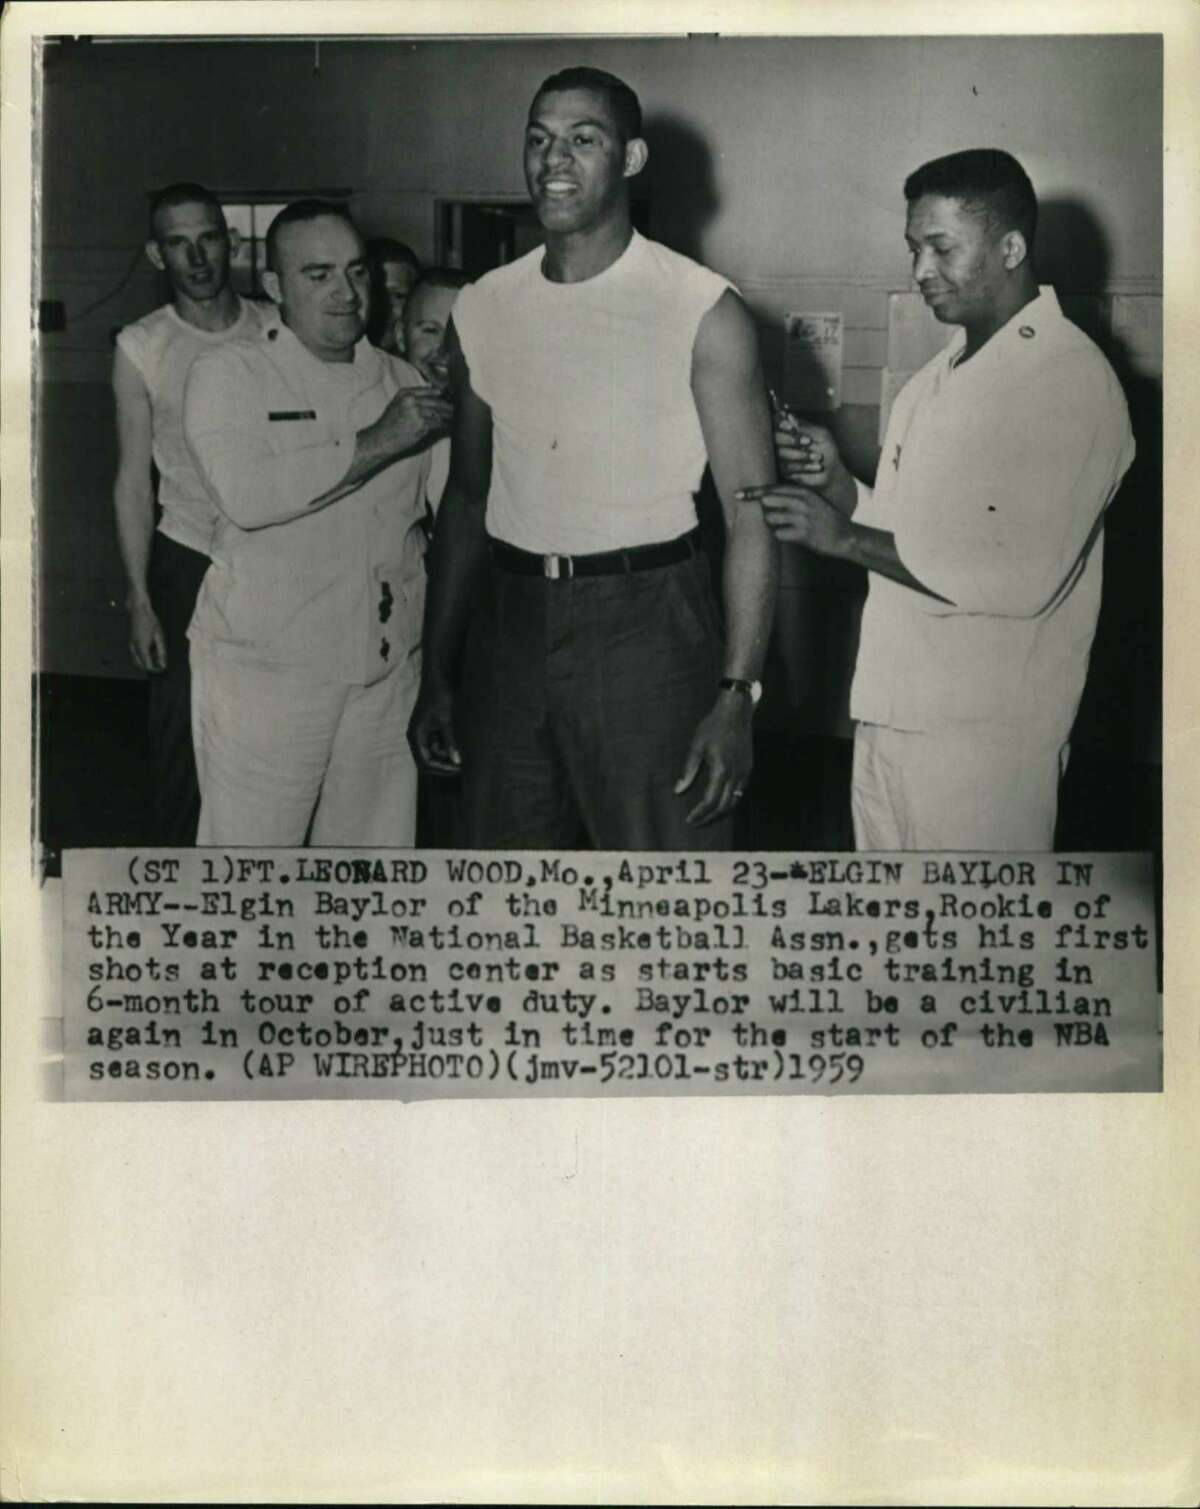 Elgin Baylor of the then-Minneapolis Lakers, the National Basketball Association's Rookie of the Year, gets his first vaccinations April 23, 1959, at Fort Leonard Wood, Mo. In July and August, he was in San Antonio at Fort Sam Houston to train as a medical corpsman during a 6-month tour of active duty. He became a civilian again in October, just in time for the start of the NBA season.